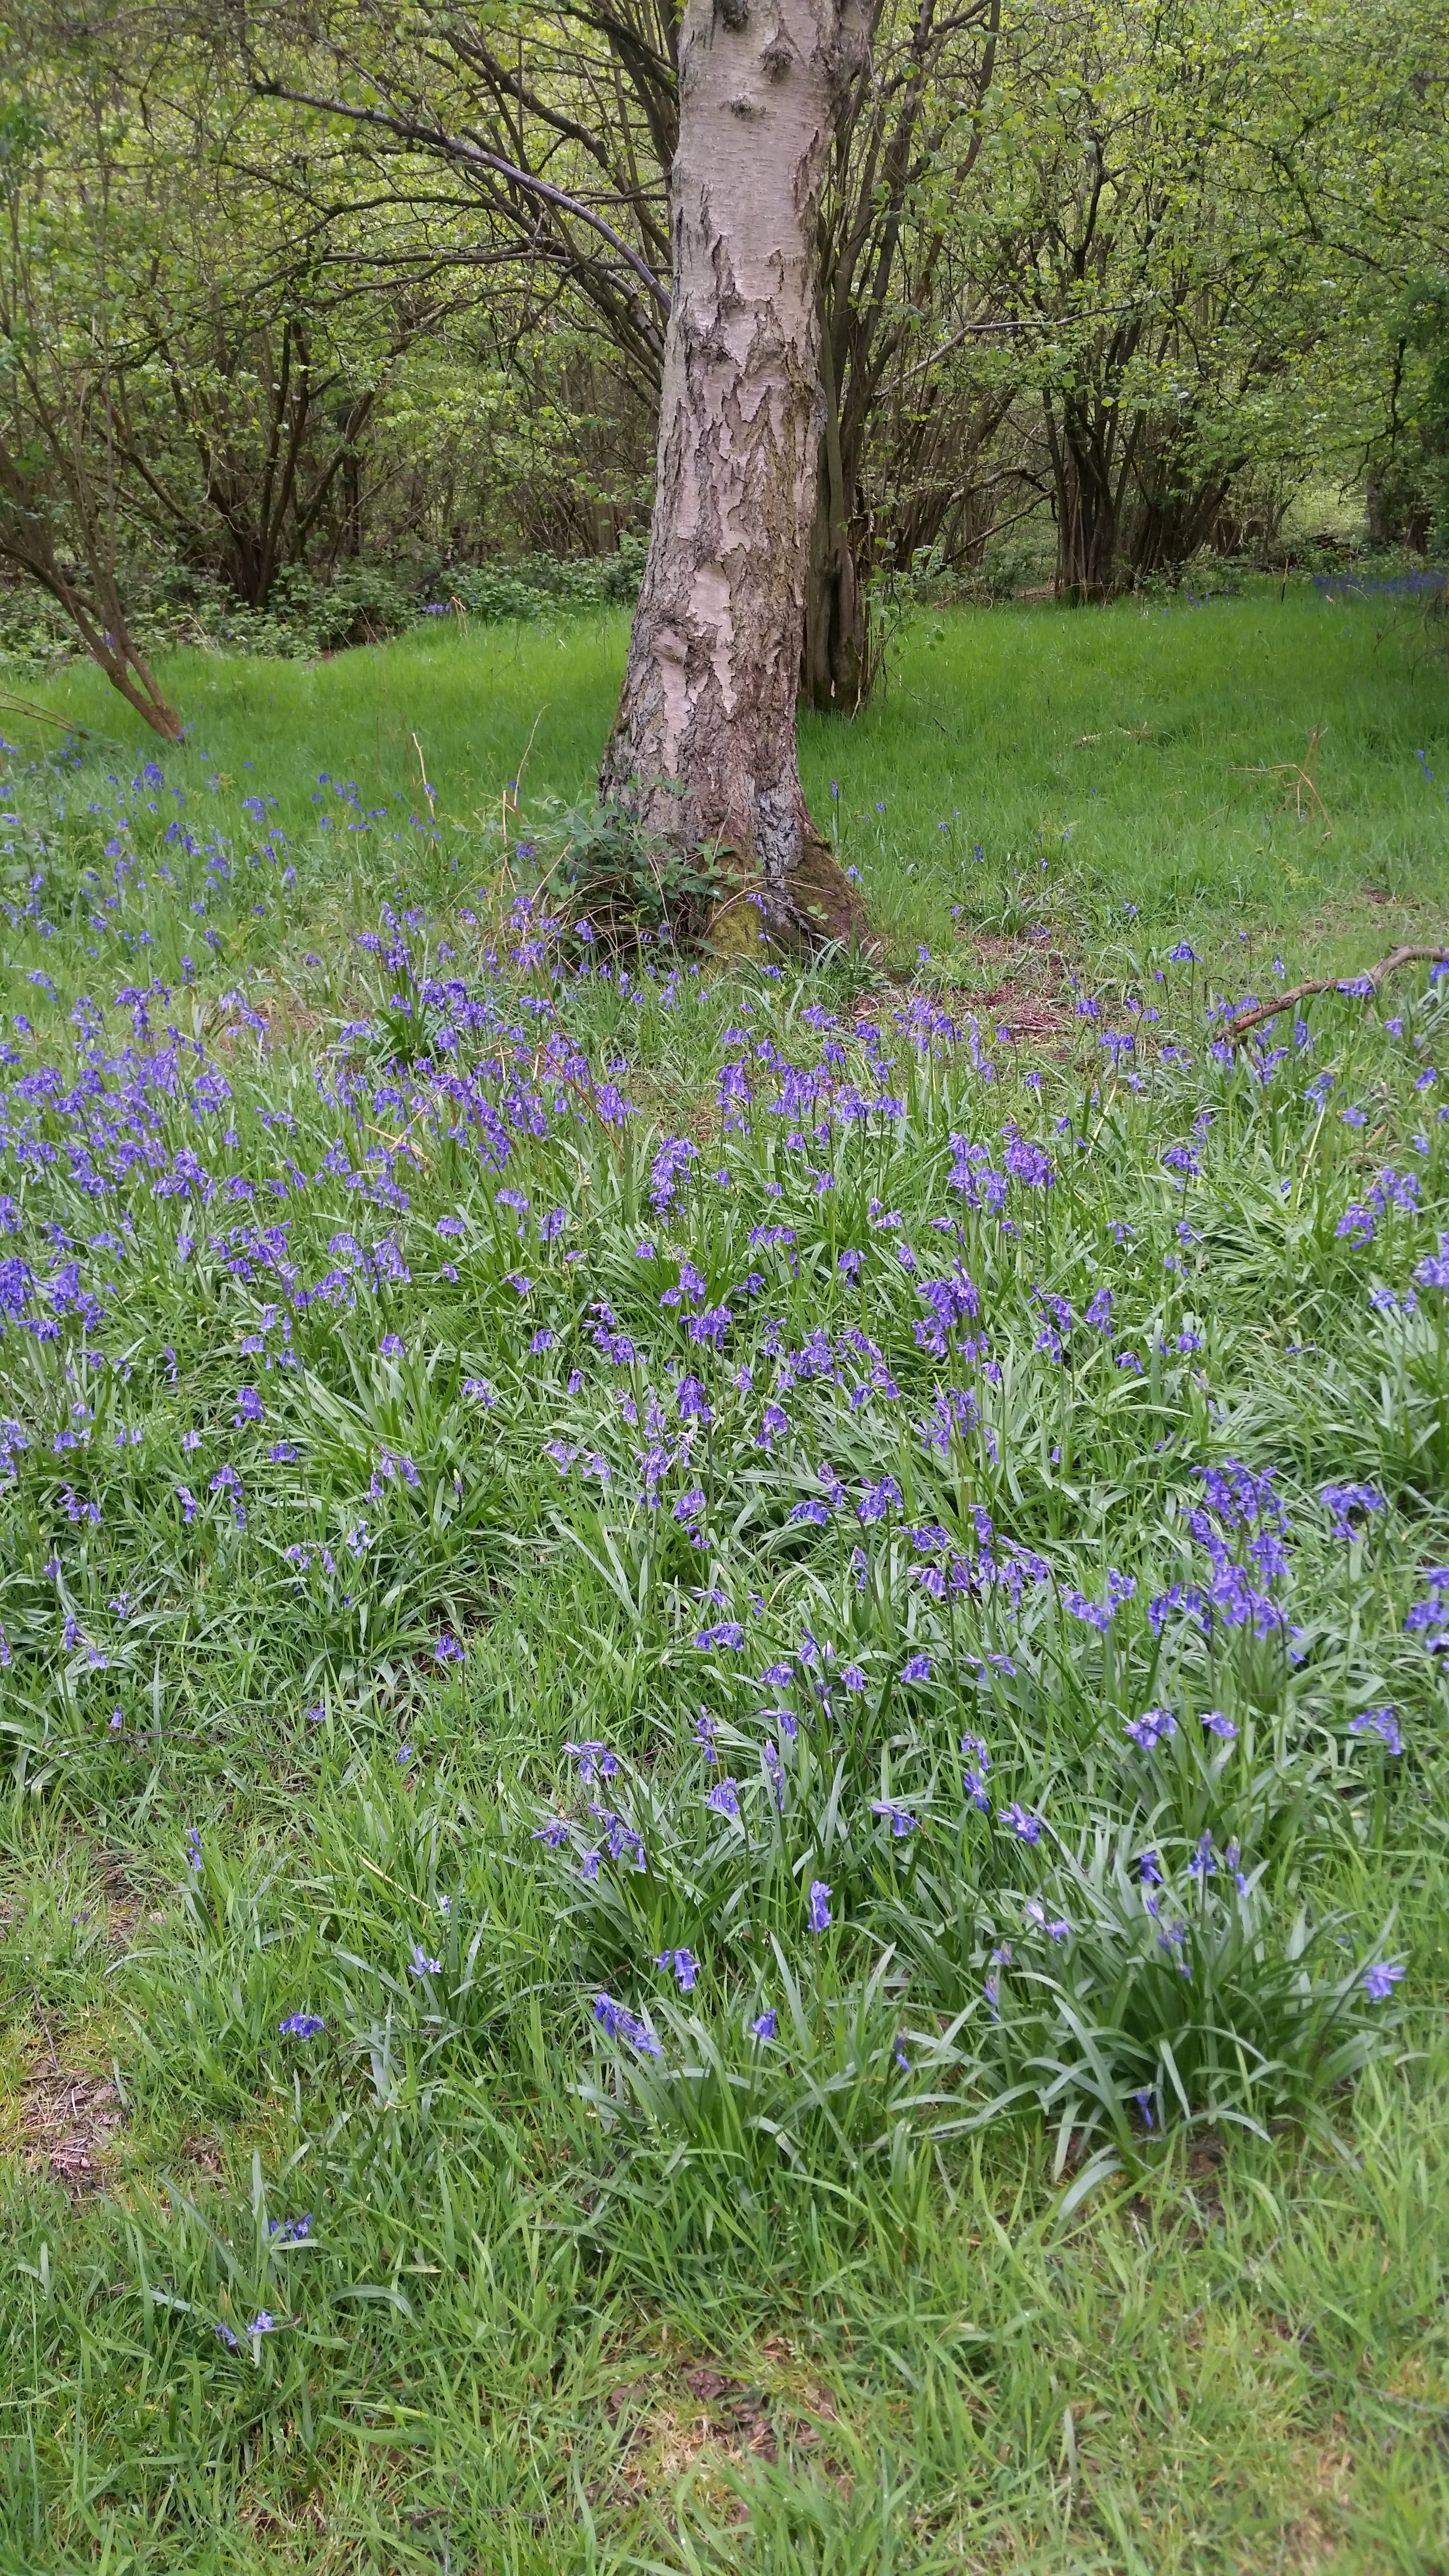 A clearning in a wood with a tree and carpeted with bluebells